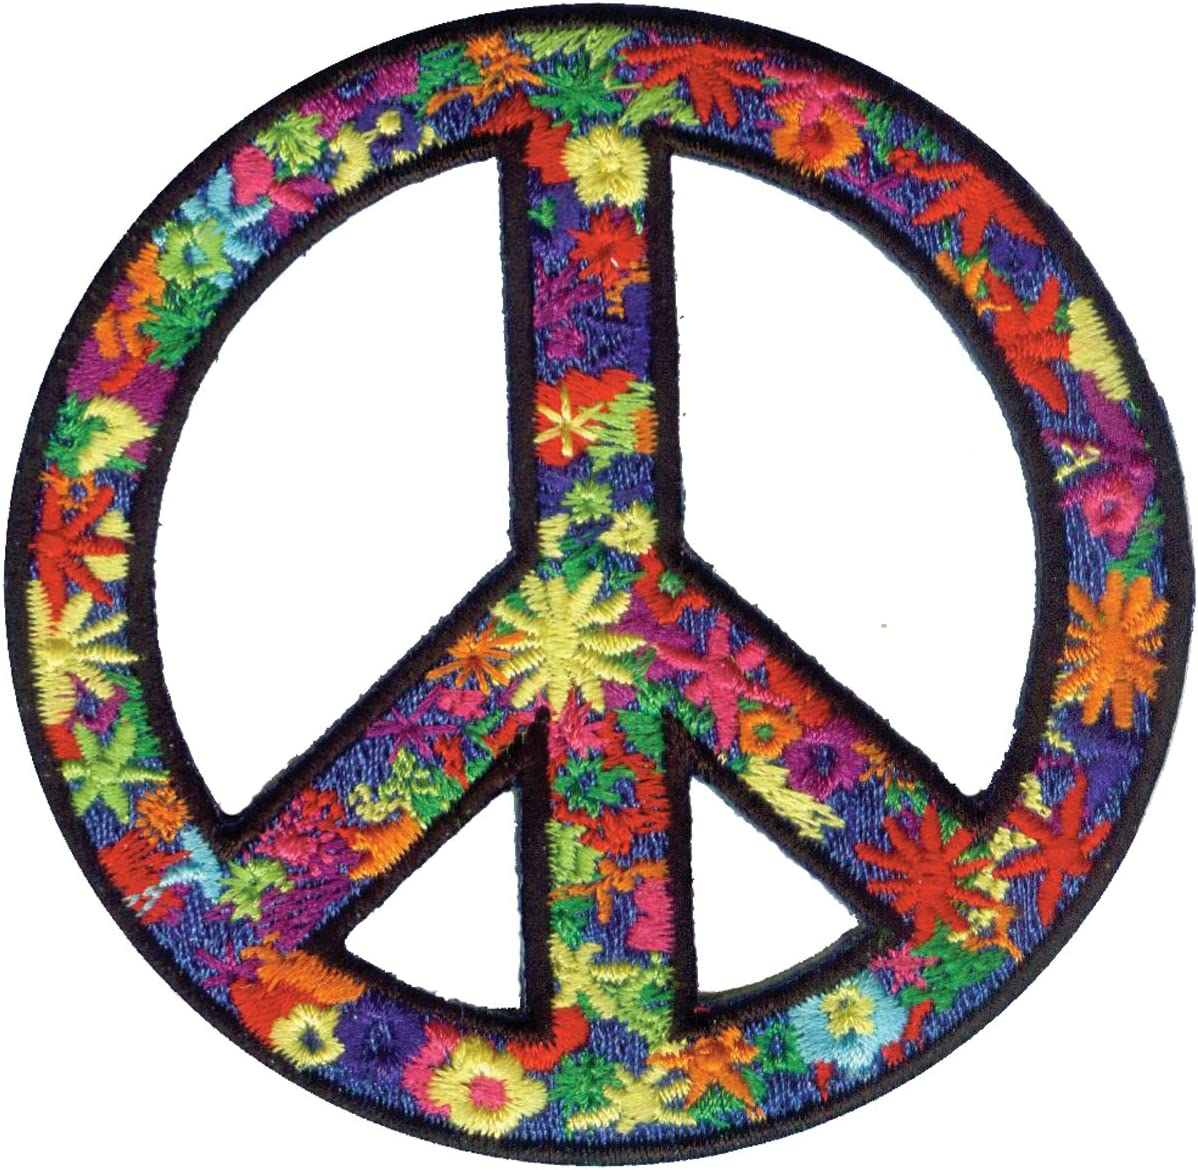 Hippie Dress | Long, Boho, Vintage, 70s C&D Visionary Application Flower Power Peace Patch $5.34 AT vintagedancer.com